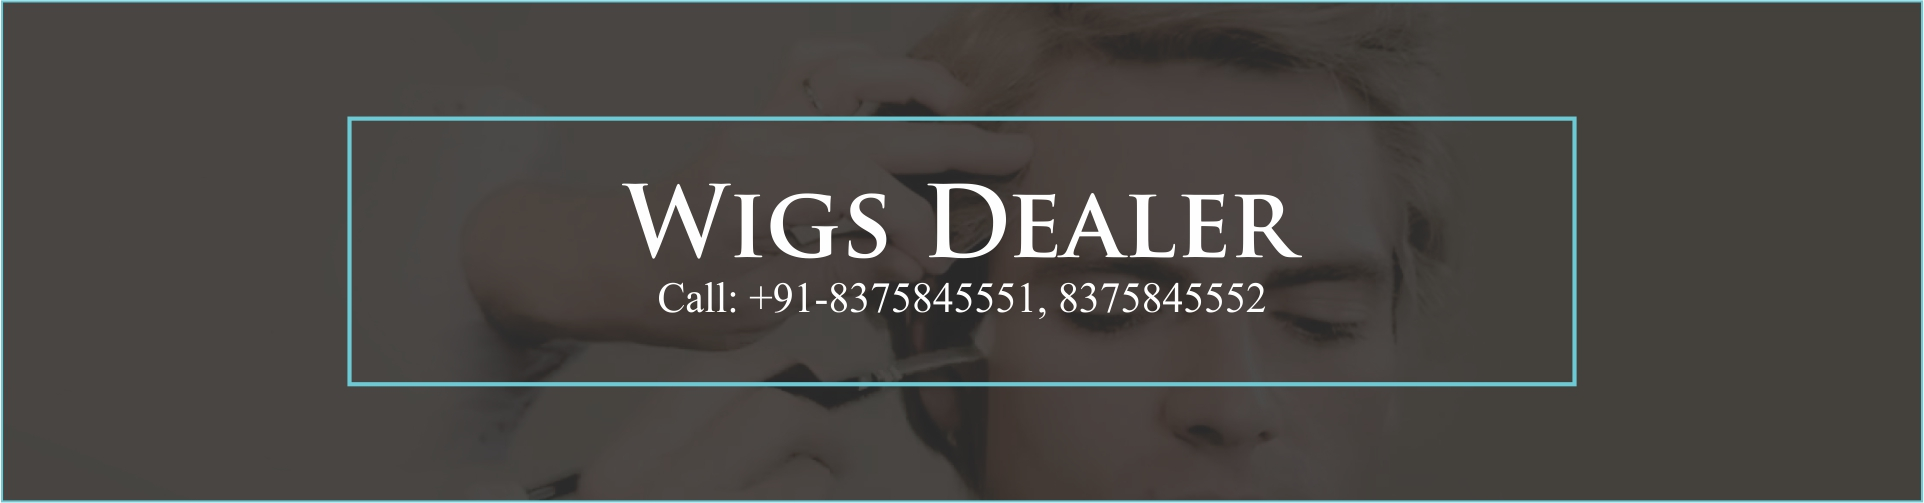 Wigs Dealer - PHC Hair Clinic